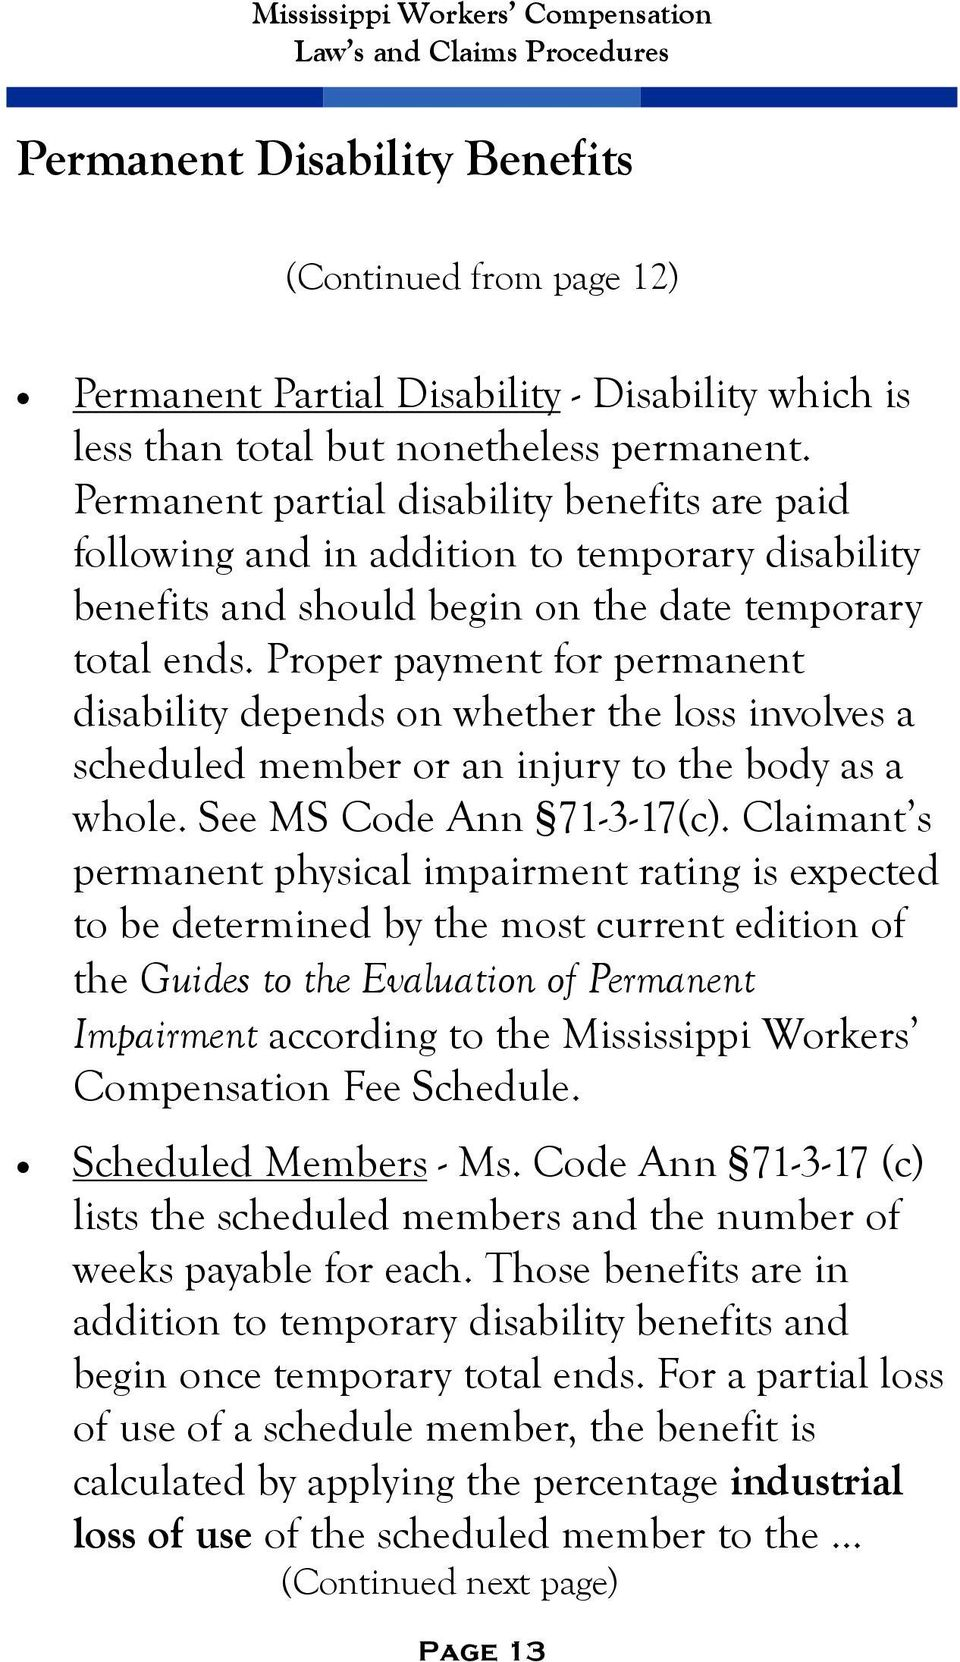 Proper payment for permanent disability depends on whether the loss involves a scheduled member or an injury to the body as a whole. See MS Code Ann 71-3-17(c).